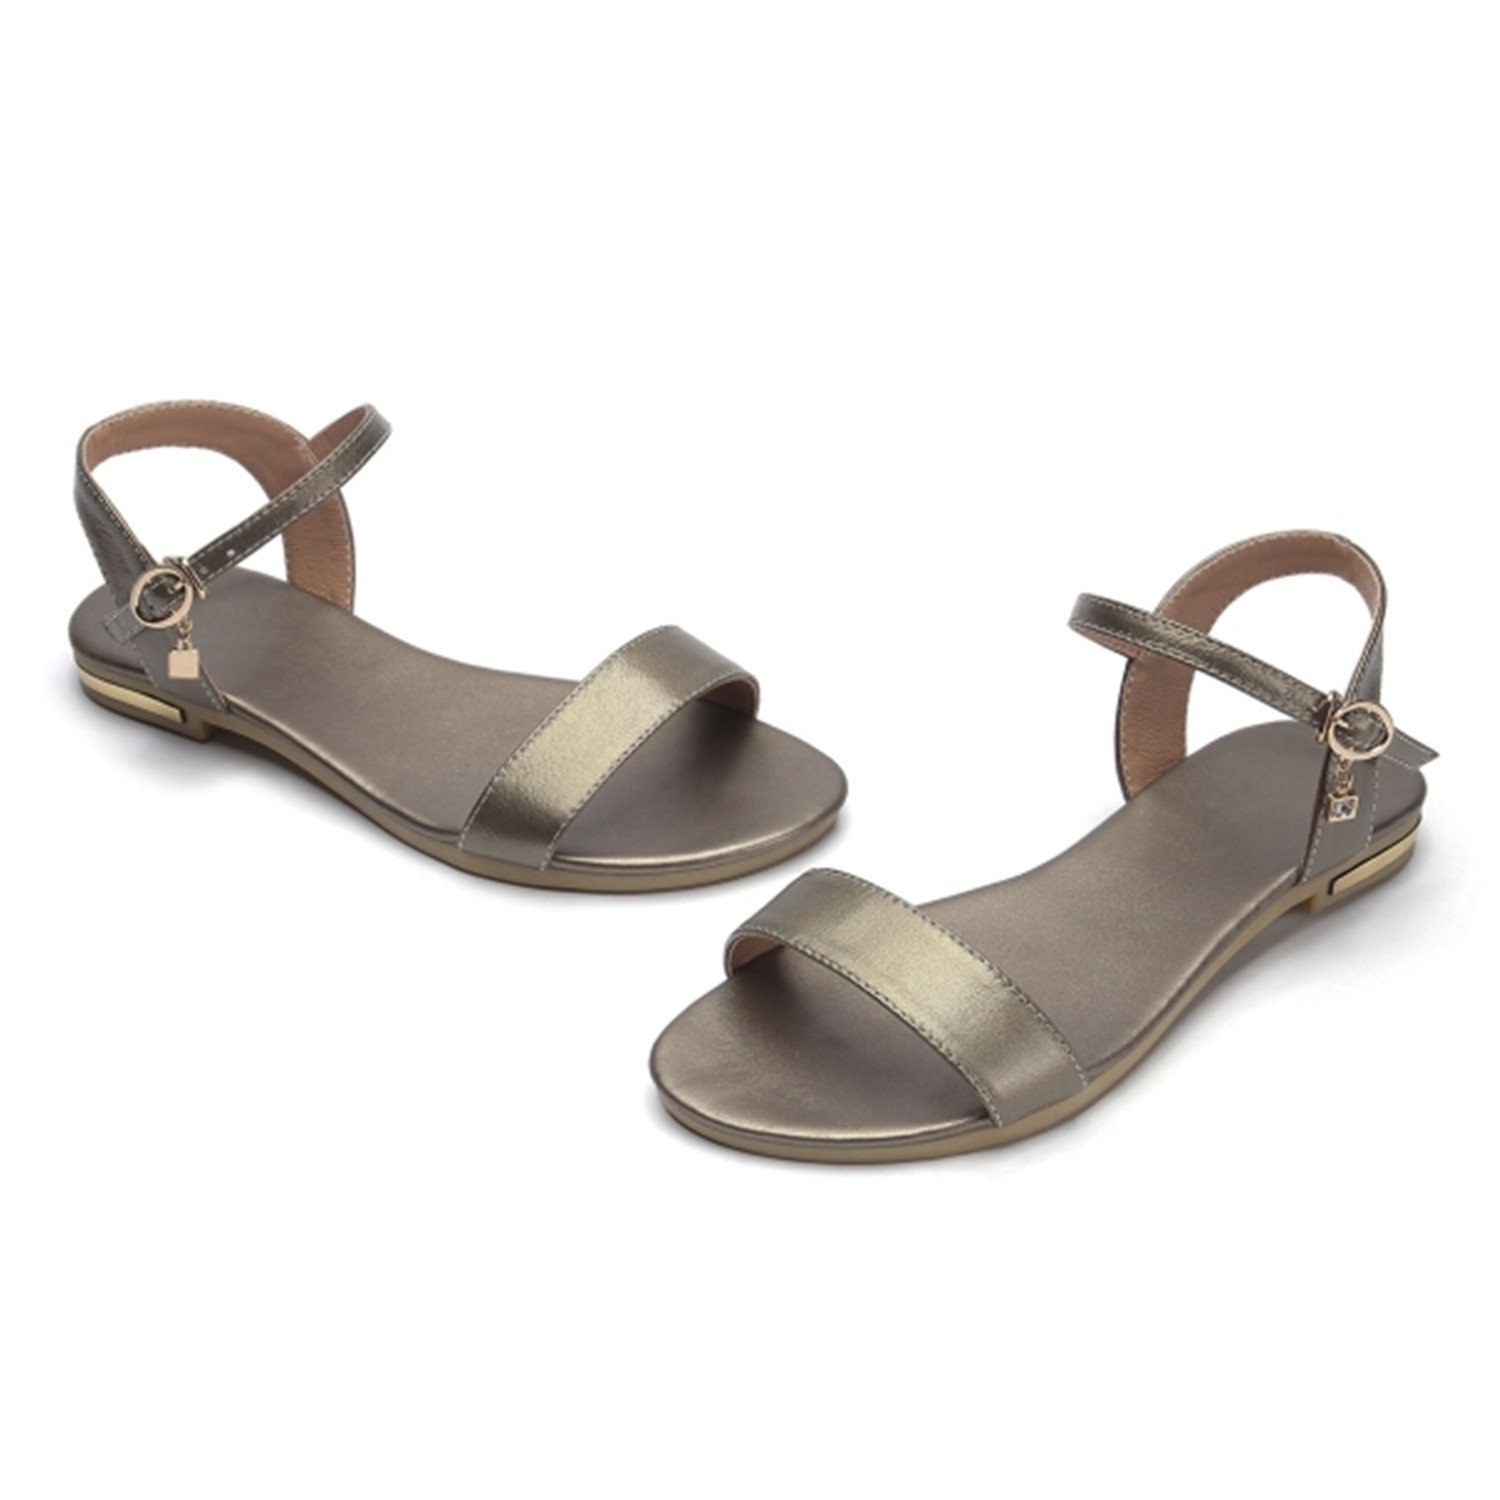 Women Sandals Genuine Leather Soft Rubber Sole Basic Buckle Strap Size 34-43 Women's Summer Shoes SS168 B07CVQFP98 10 B(M) US|Champagne